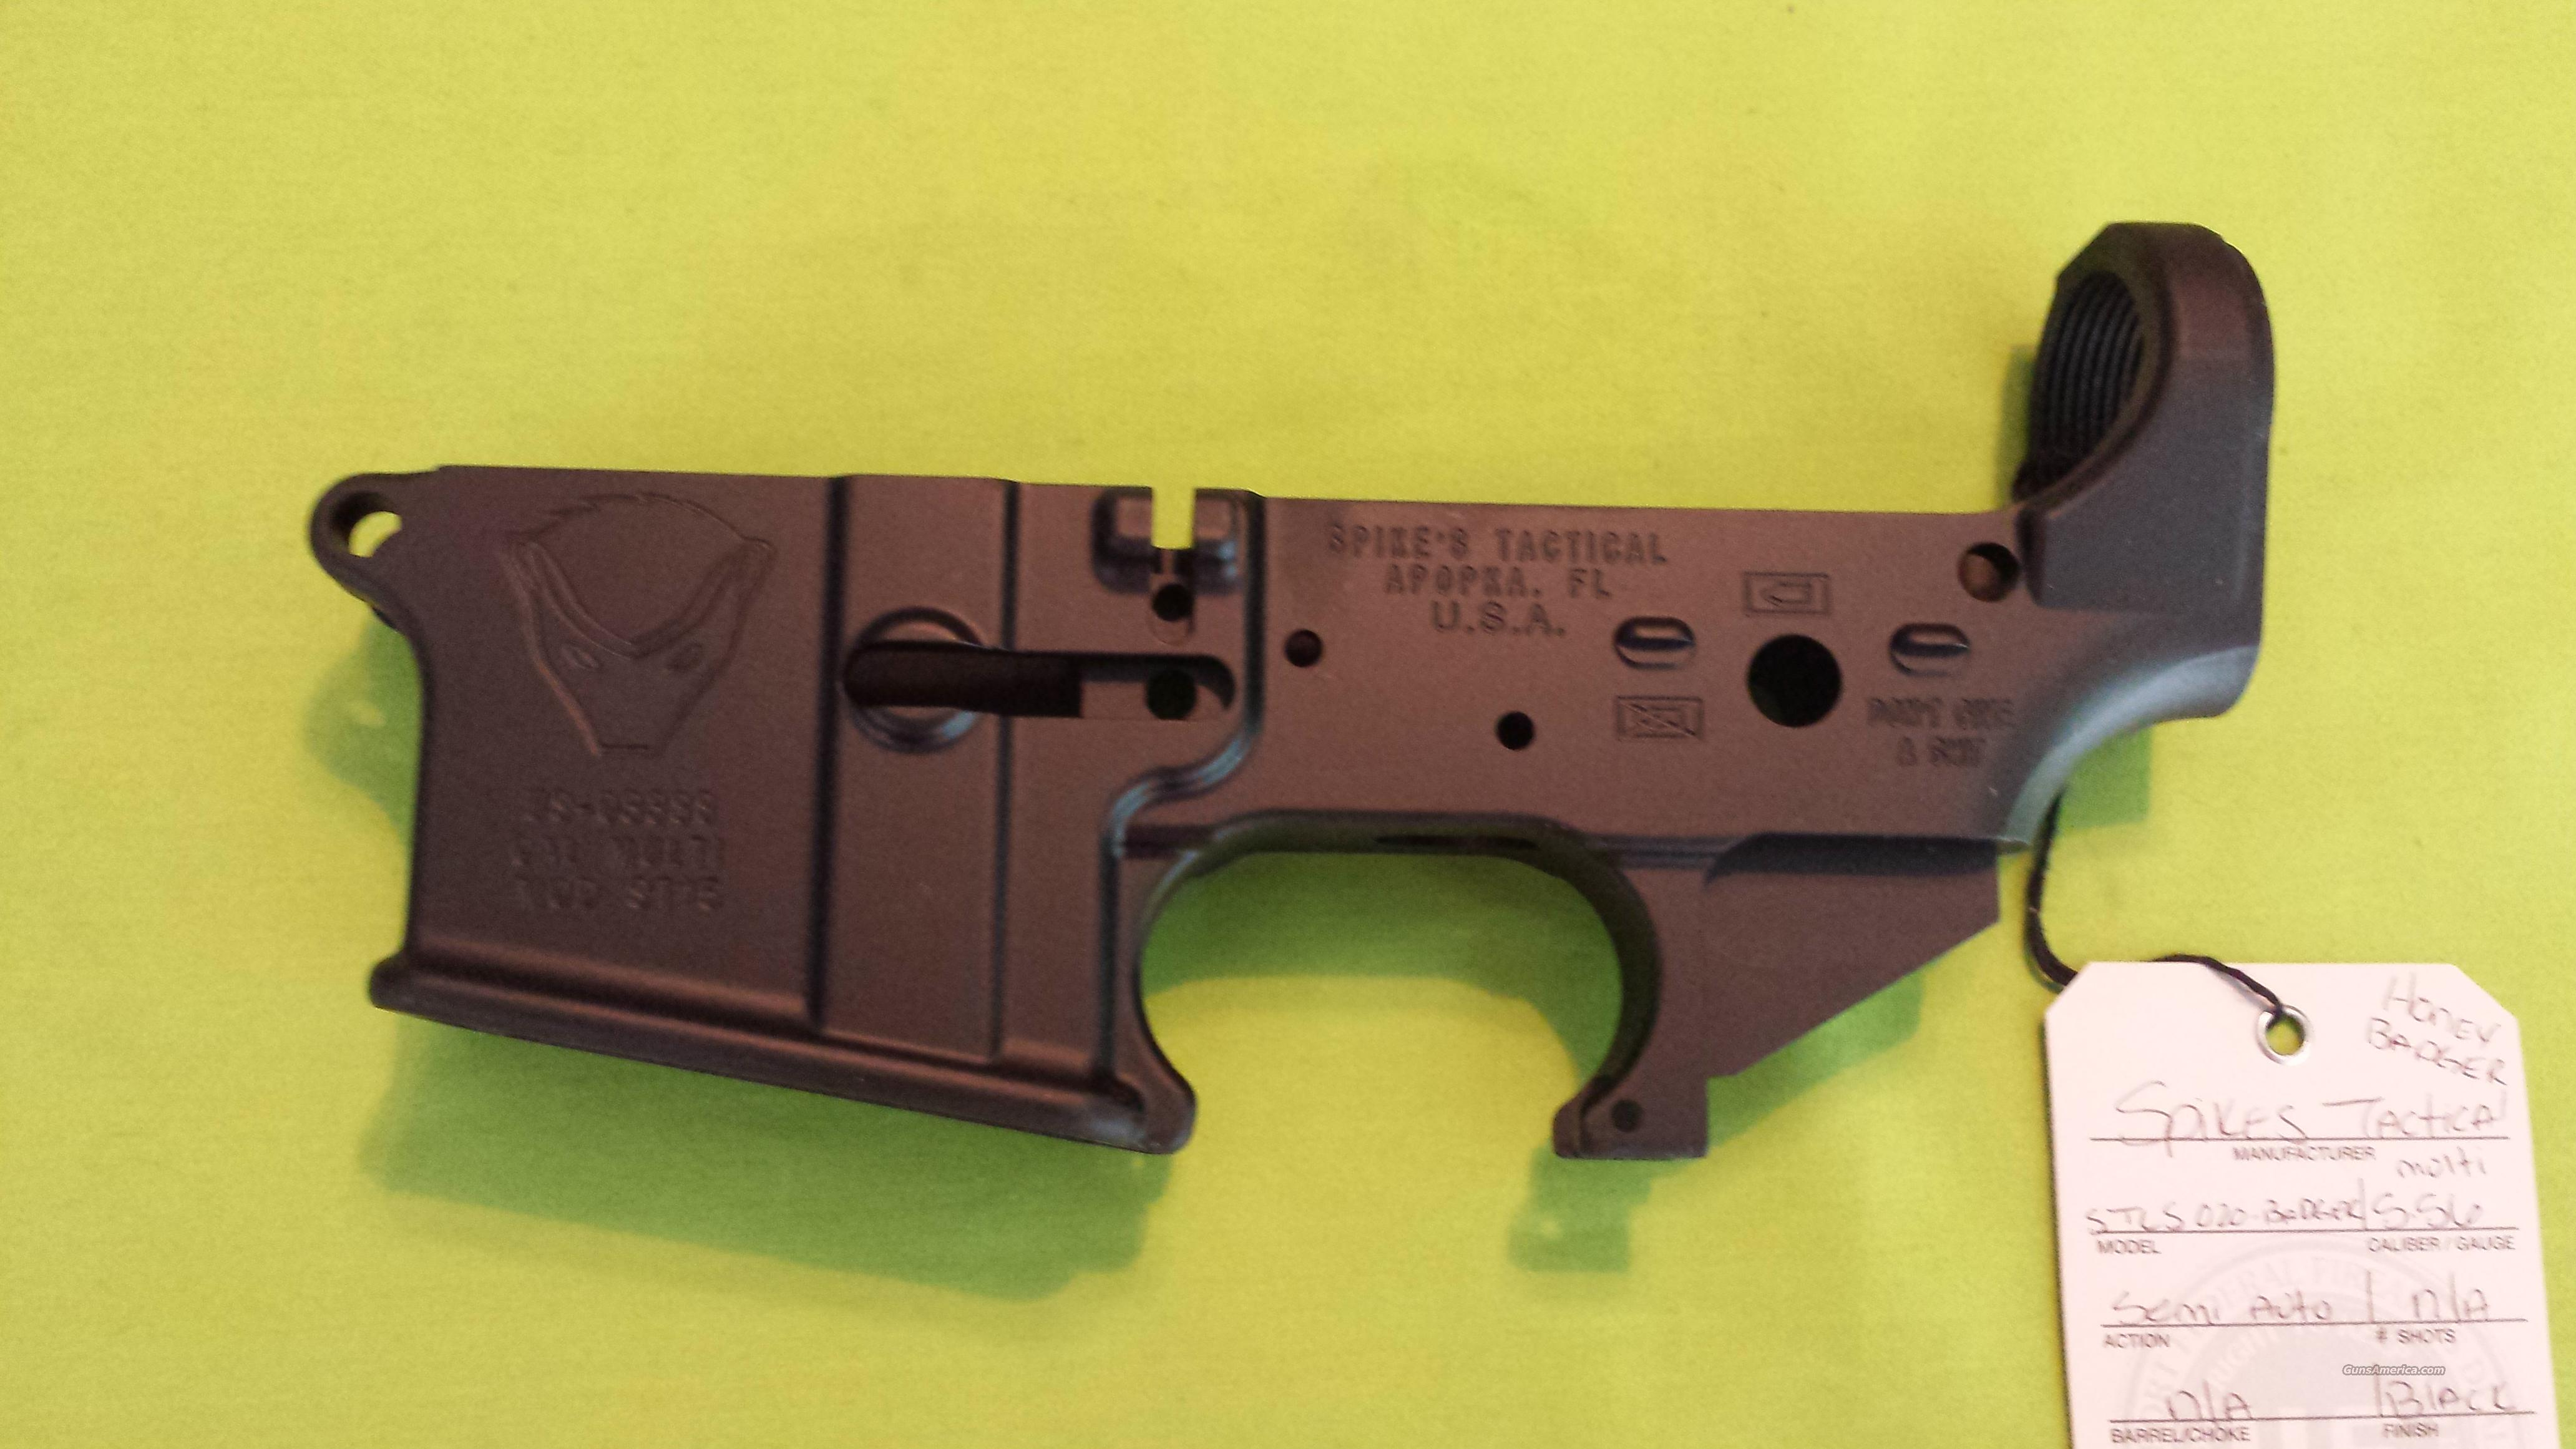 SPIKES STRIPPED LOWER HONEY BADGER AR 15 5.56 .223 MULTI  Guns > Rifles > AR-15 Rifles - Small Manufacturers > Lower Only